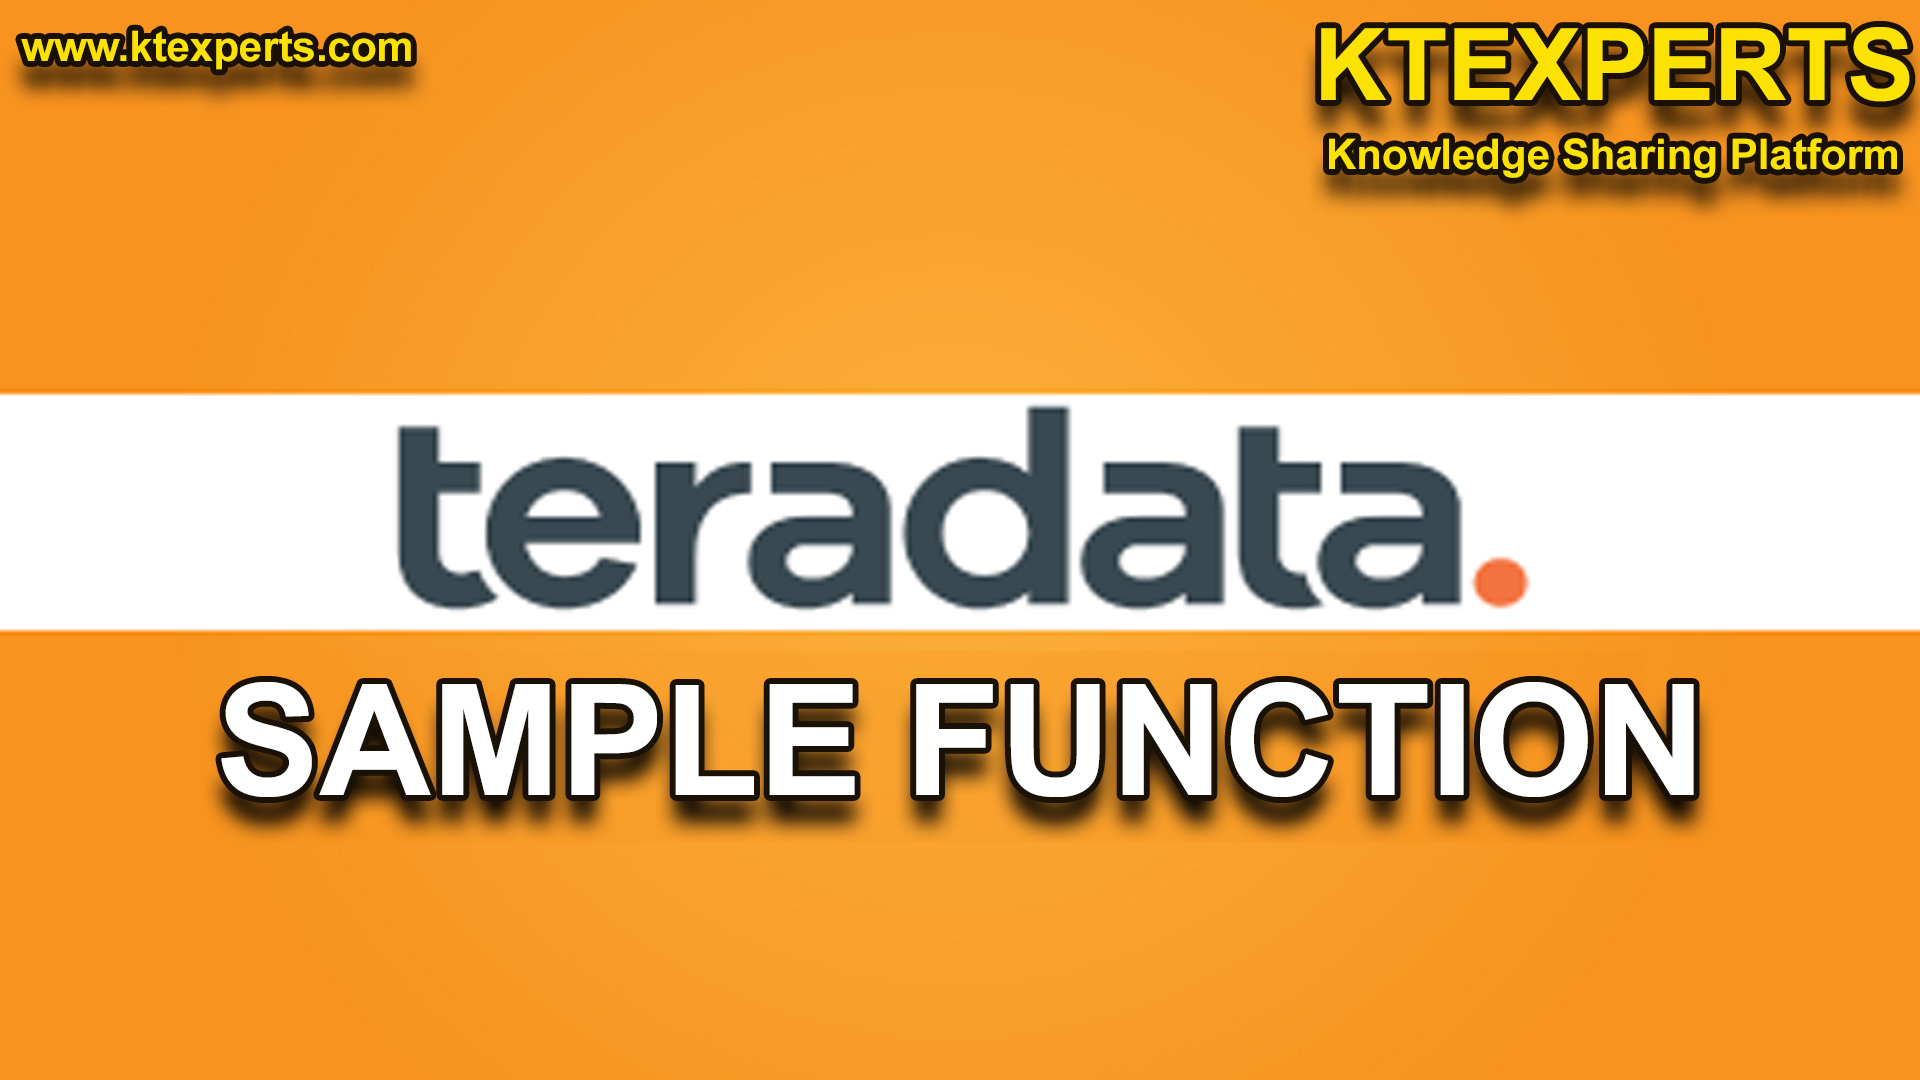 SAMPLE FUNCTION in Teradata